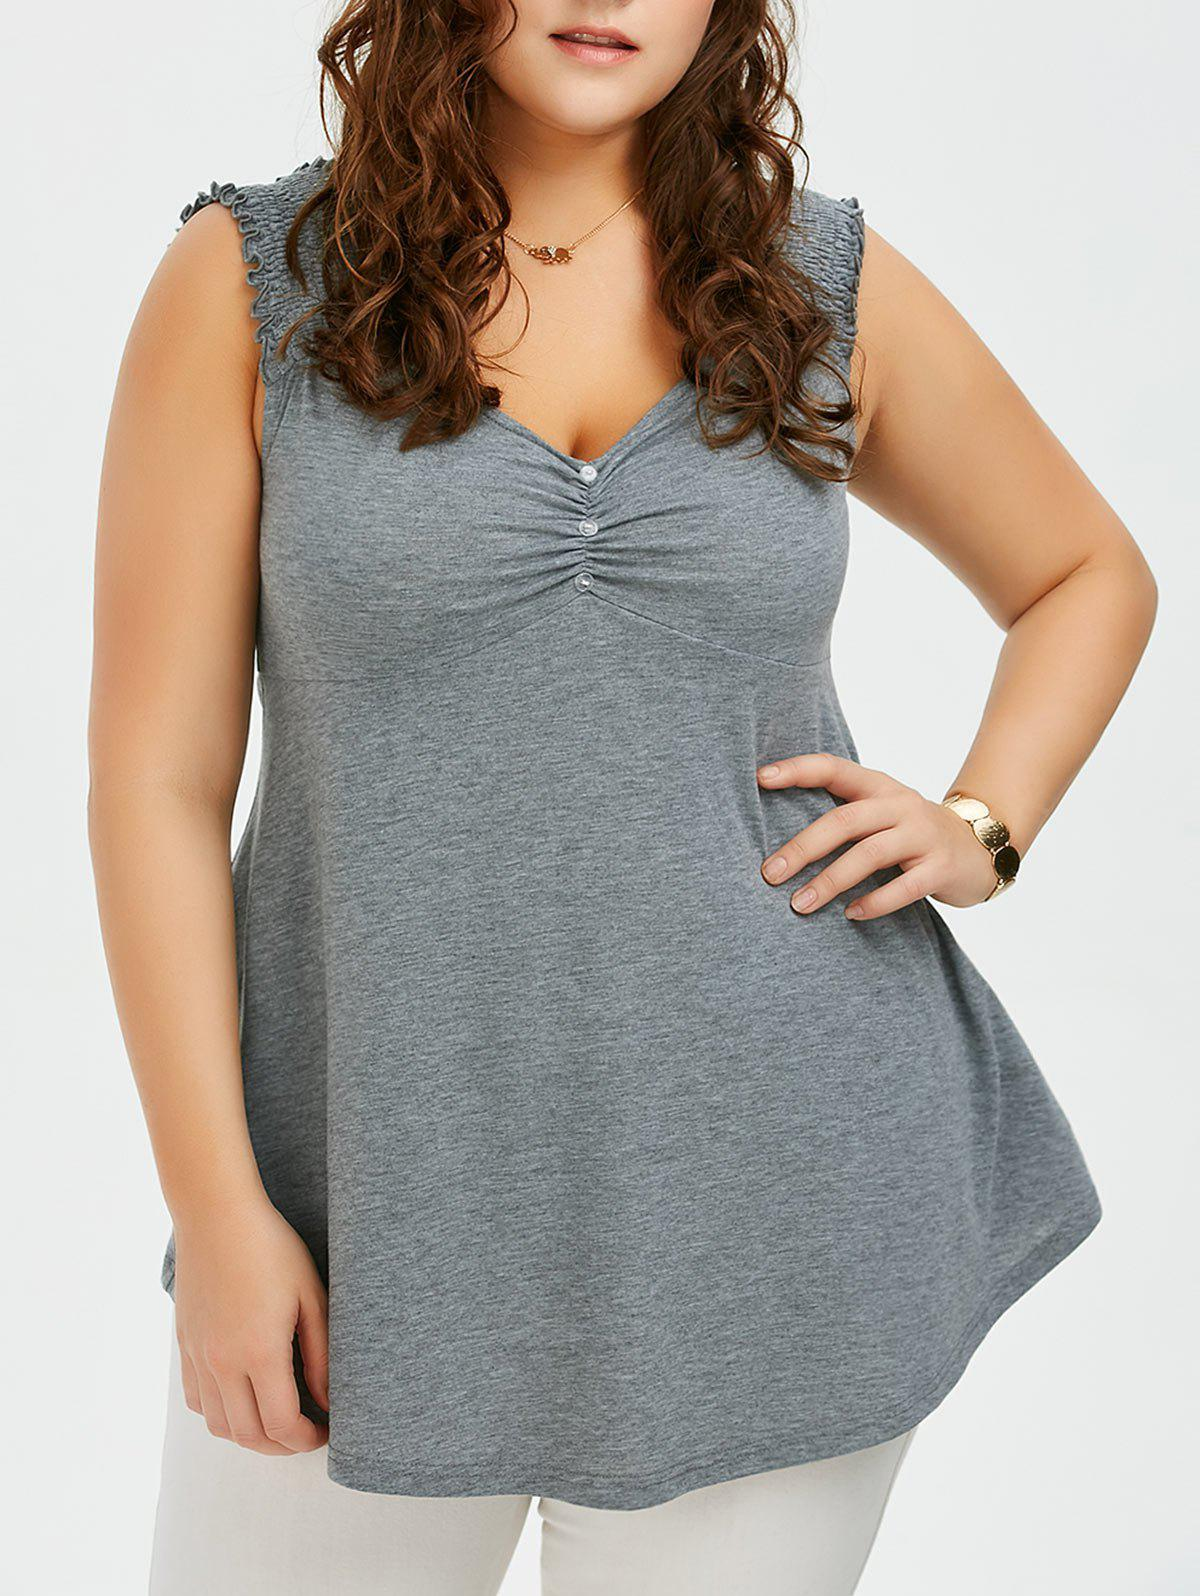 Plus Size Shirred Shoulder Design Babydoll Tank TopWOMEN<br><br>Size: 5XL; Color: GRAY; Material: Polyester,Spandex; Shirt Length: Regular; Sleeve Length: Sleeveless; Collar: V-Neck; Style: Casual; Season: Summer; Pattern Type: Solid; Weight: 0.3600kg; Package Contents: 1 x Tank Top;